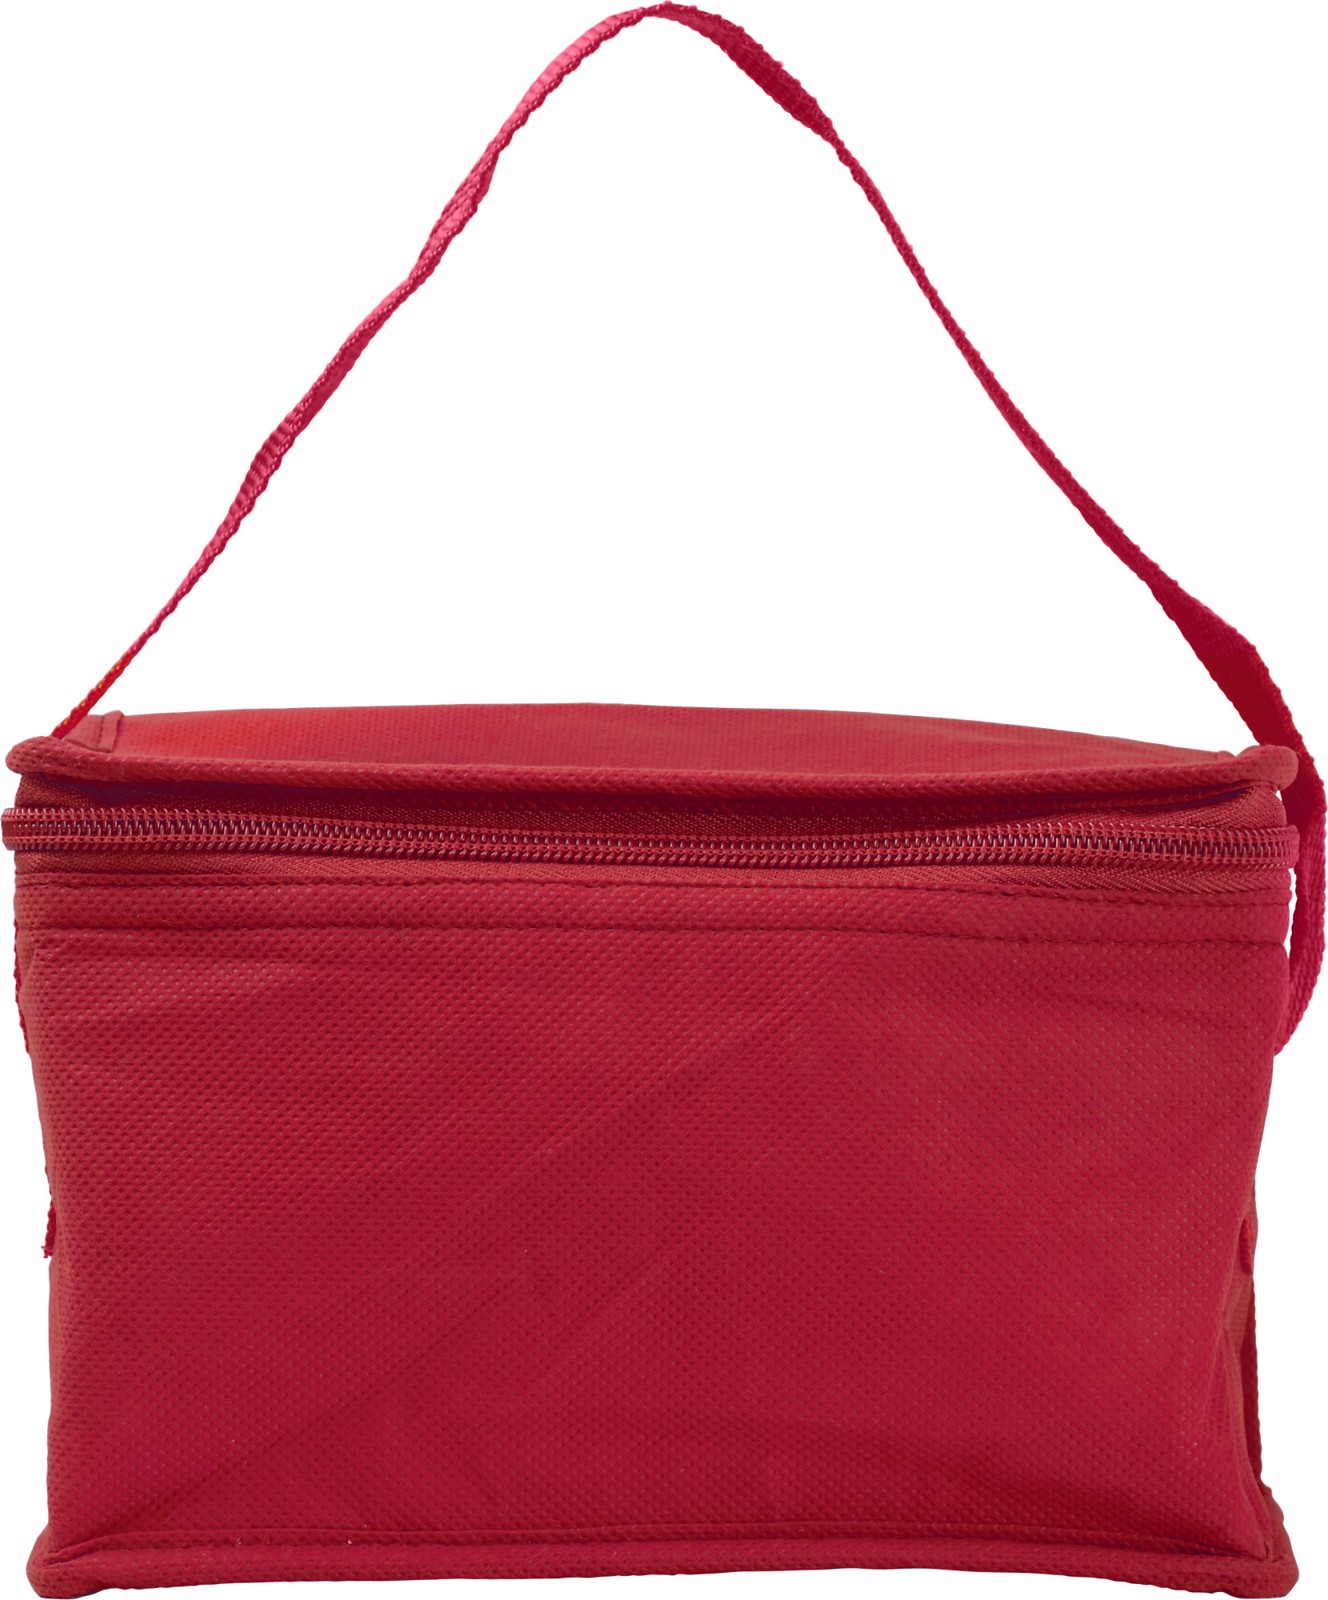 Nonwoven (80 gr/m²) cooler bag - Red